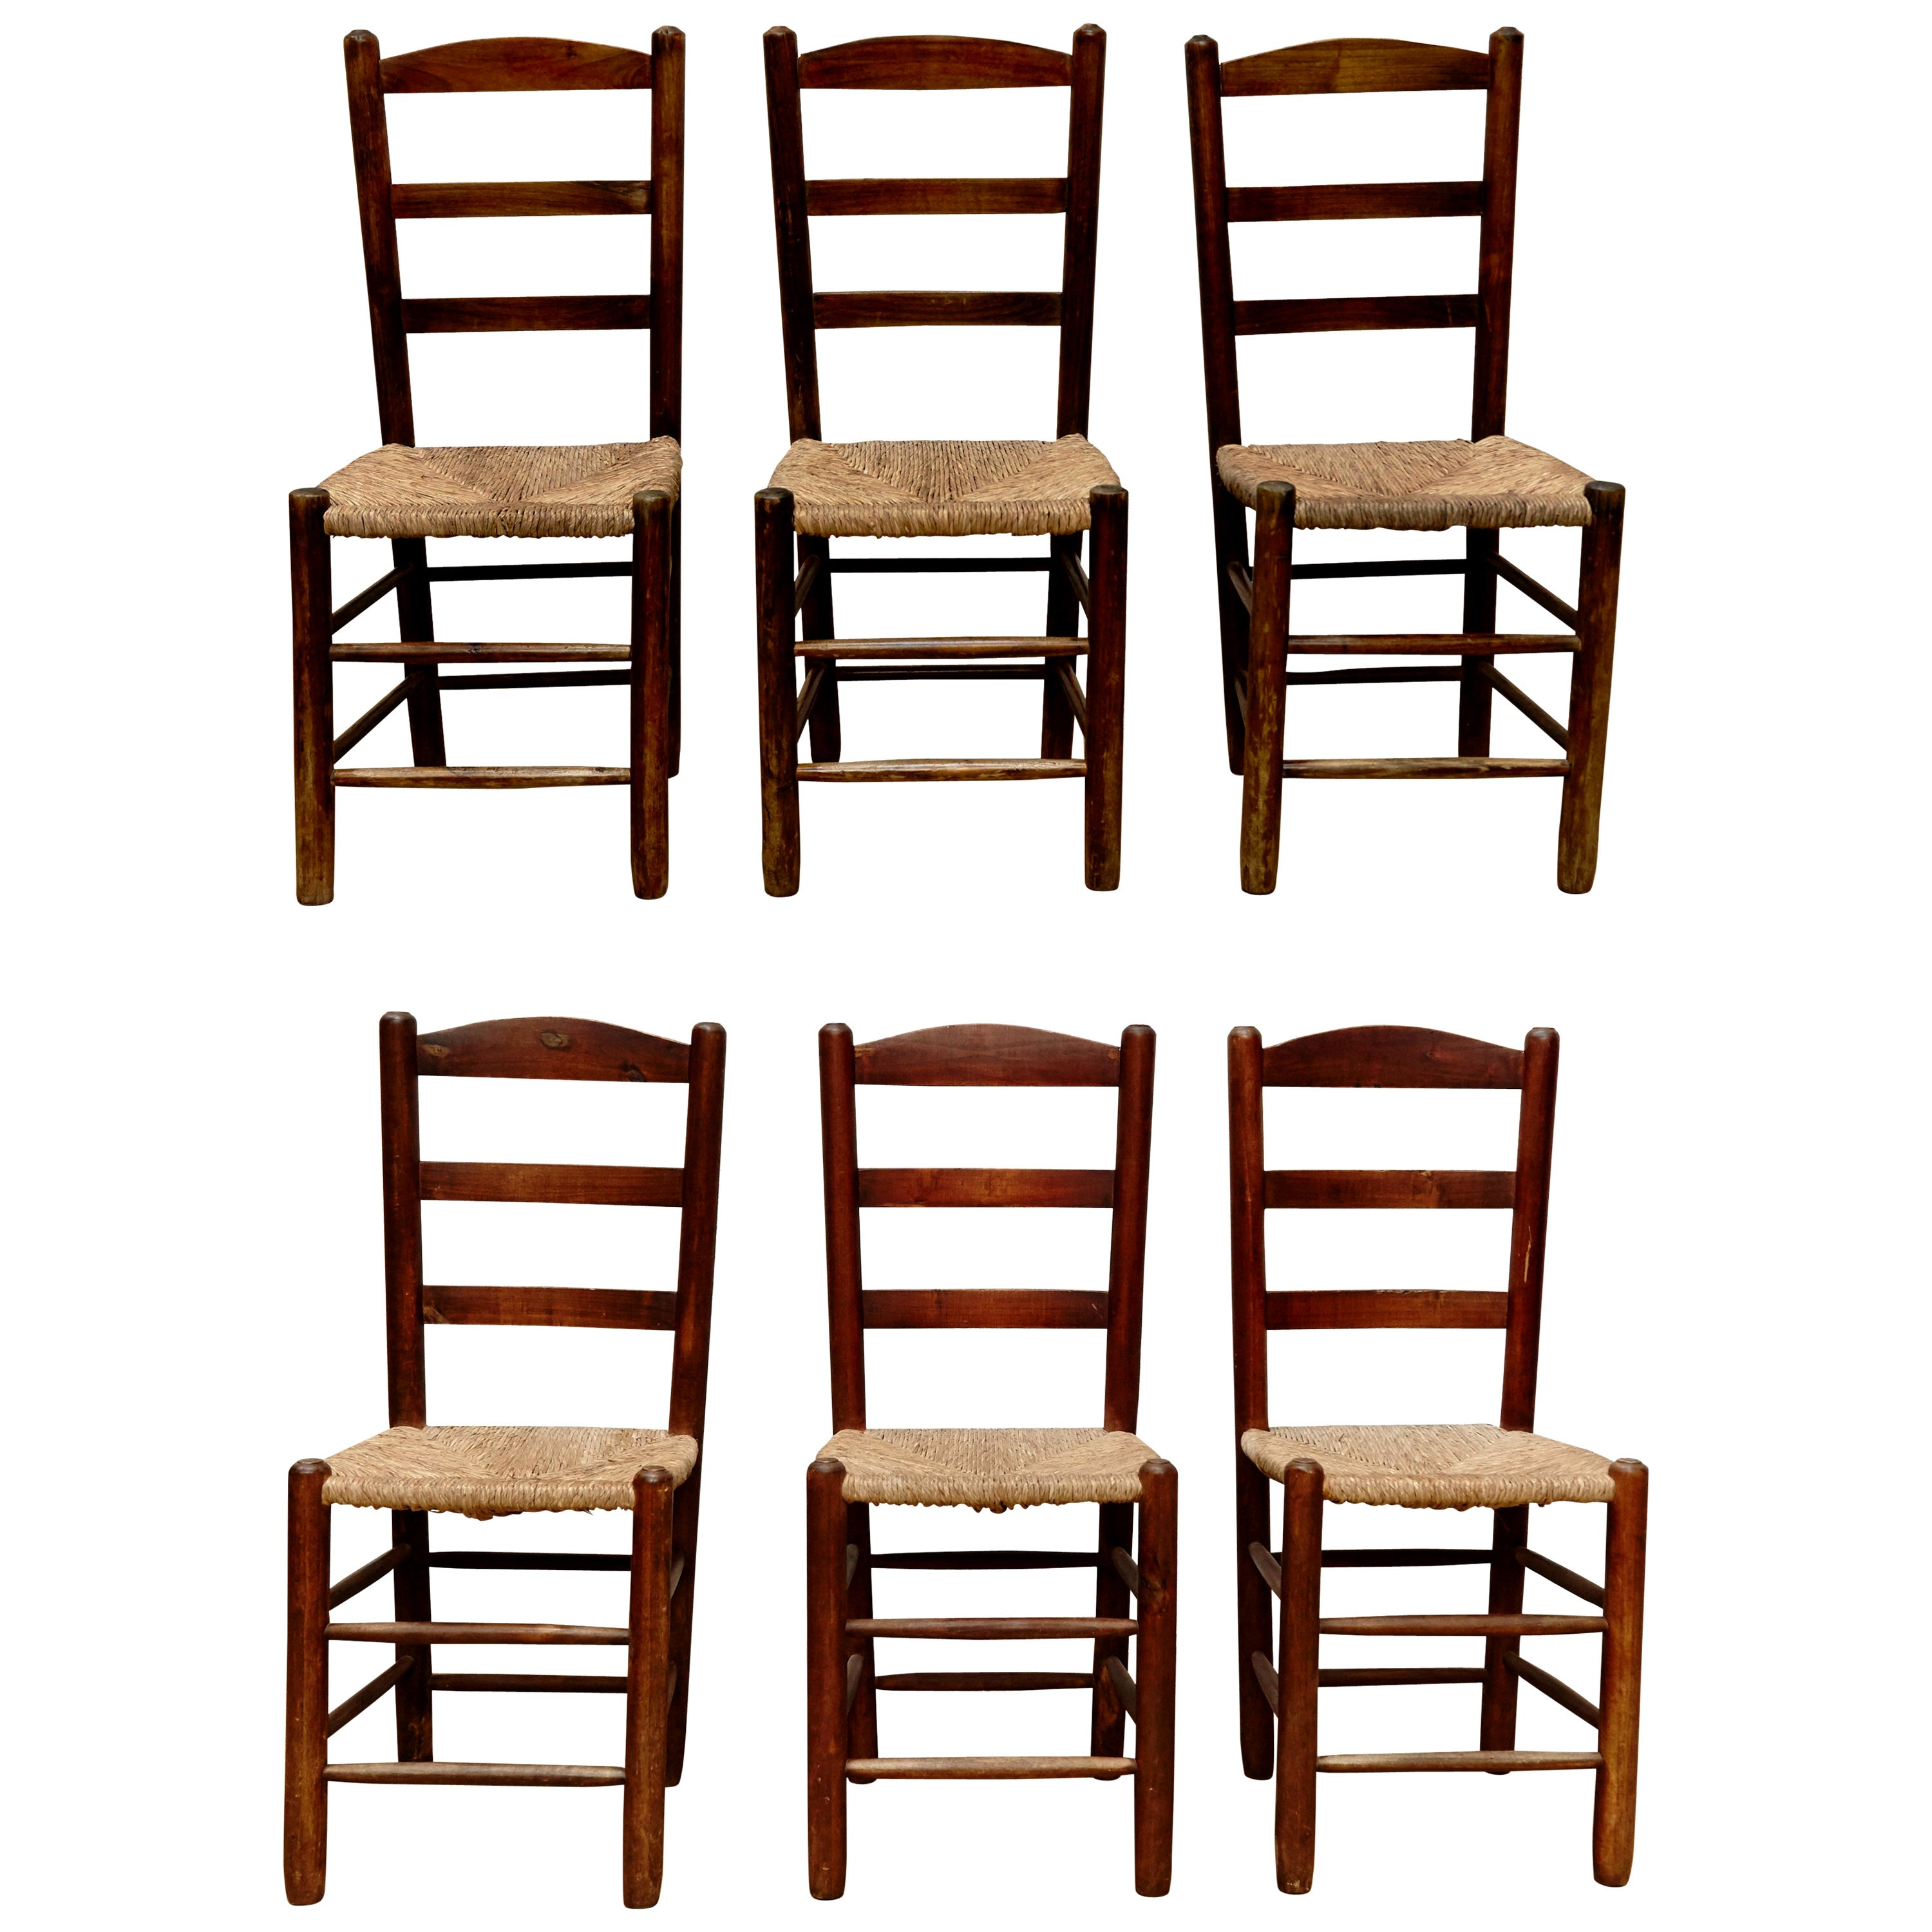 Set of Six Chairs after Charlotte Perriand in Wood and Rattan, circa 1950